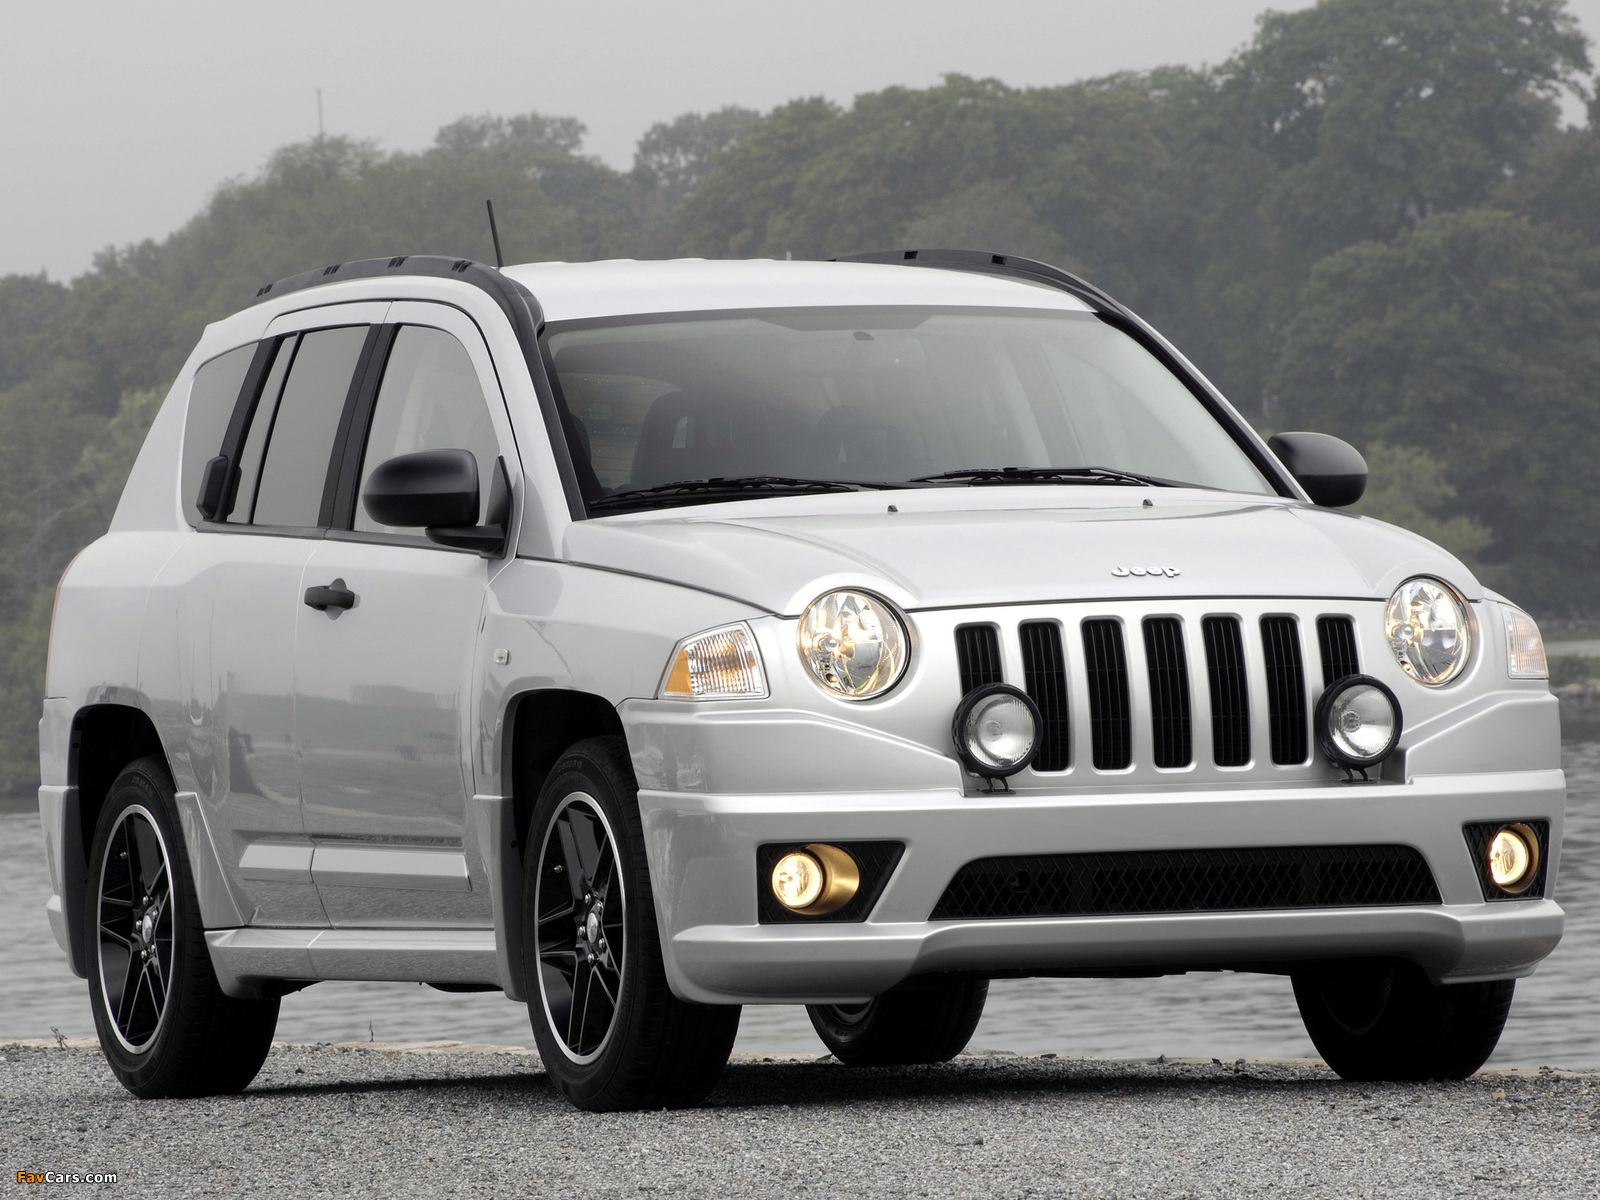 Jeep  pass 2 4 Sport 10 additionally Pictures further New Jeep  pass Pictures in addition Wallpaper 04 besides 2014 Jeep  pass Limited 4x4. on jeep compass